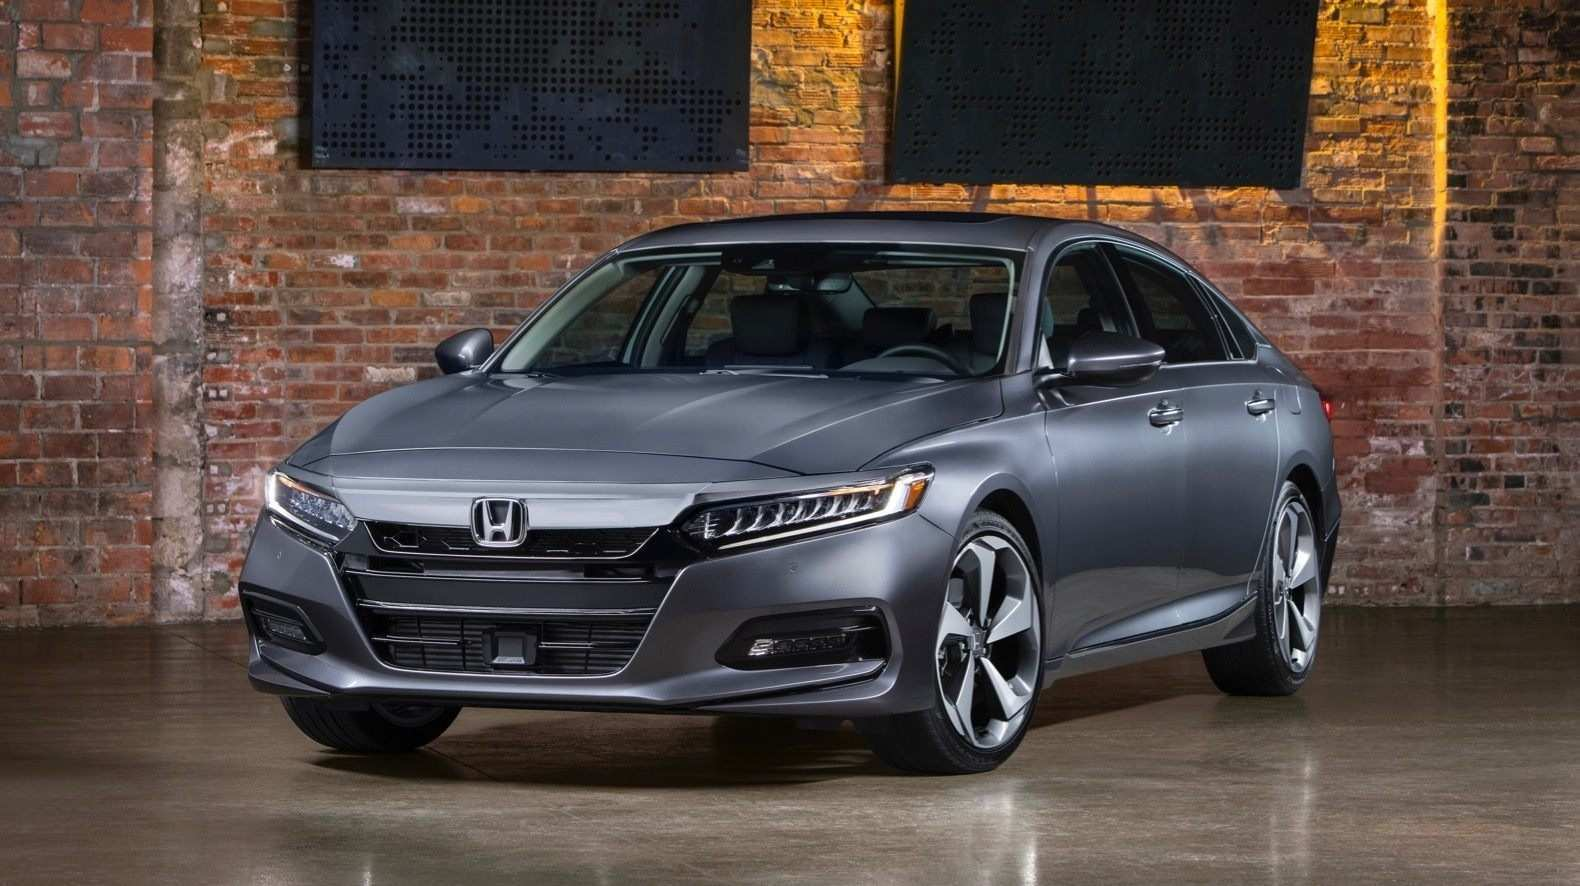 88 The 2020 Honda Accord Coupe Sedan Release Date And Concept